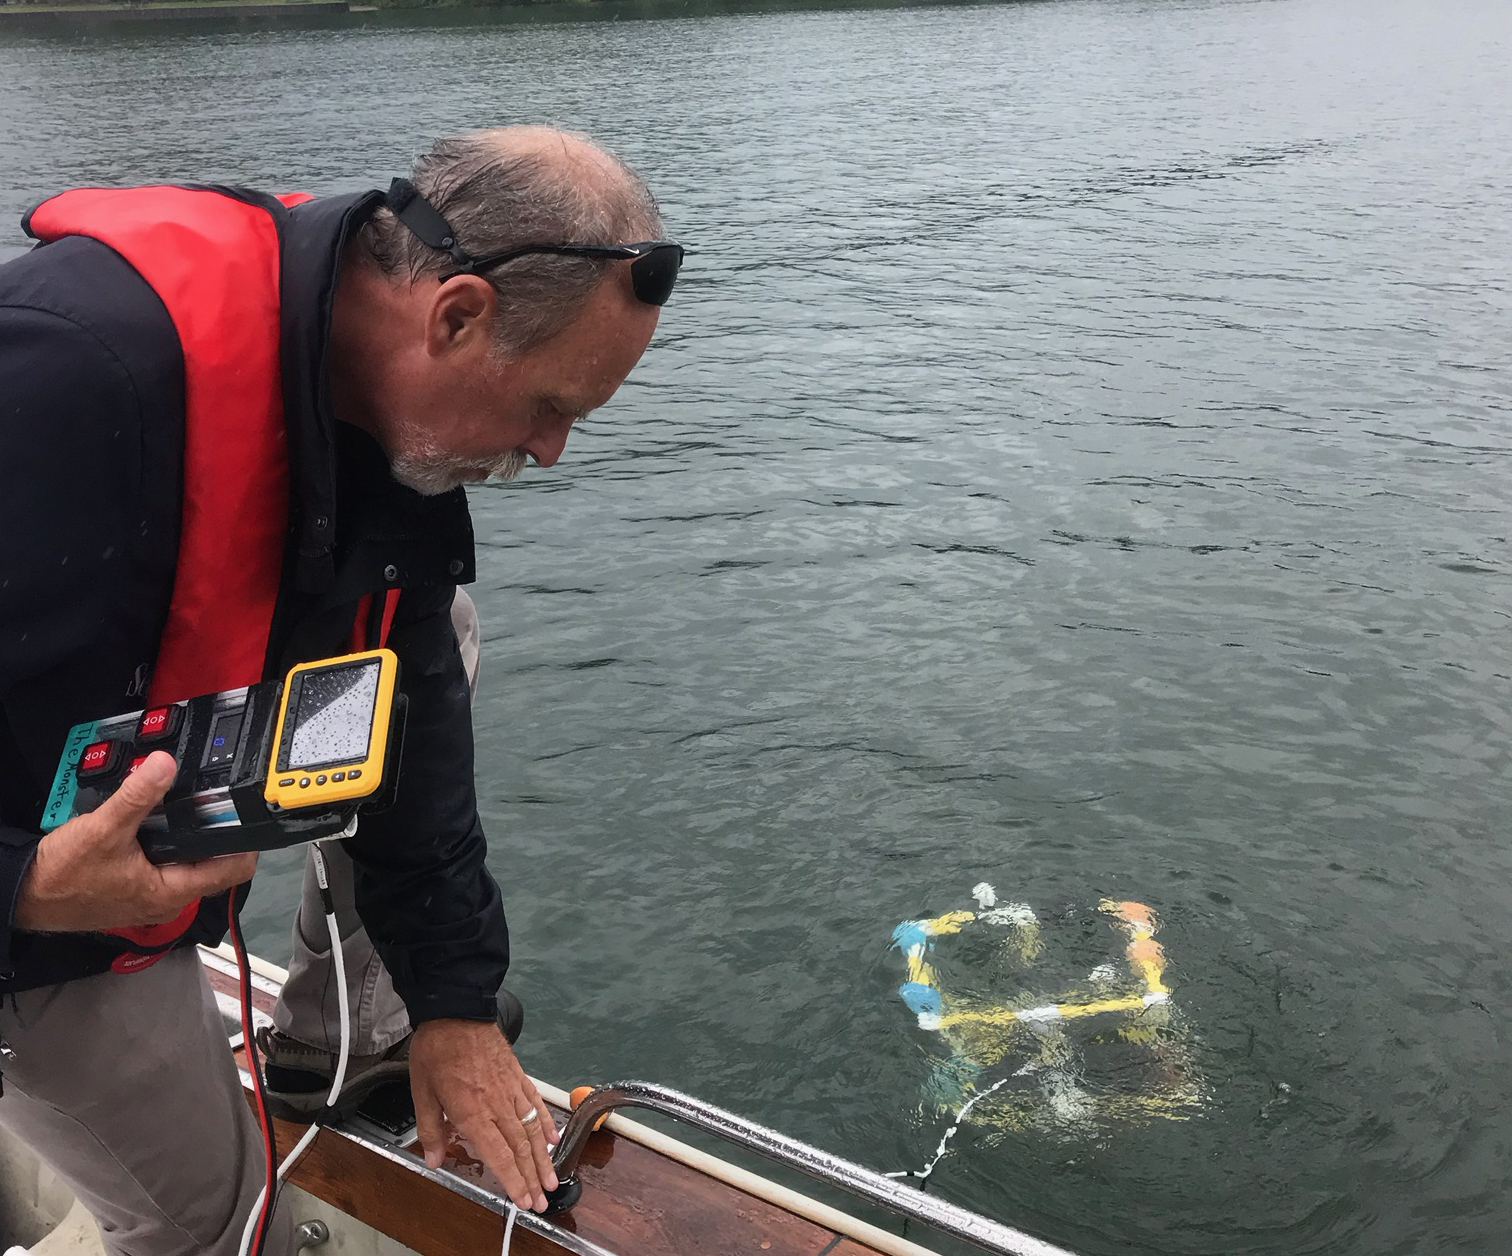 deploying underwater robots